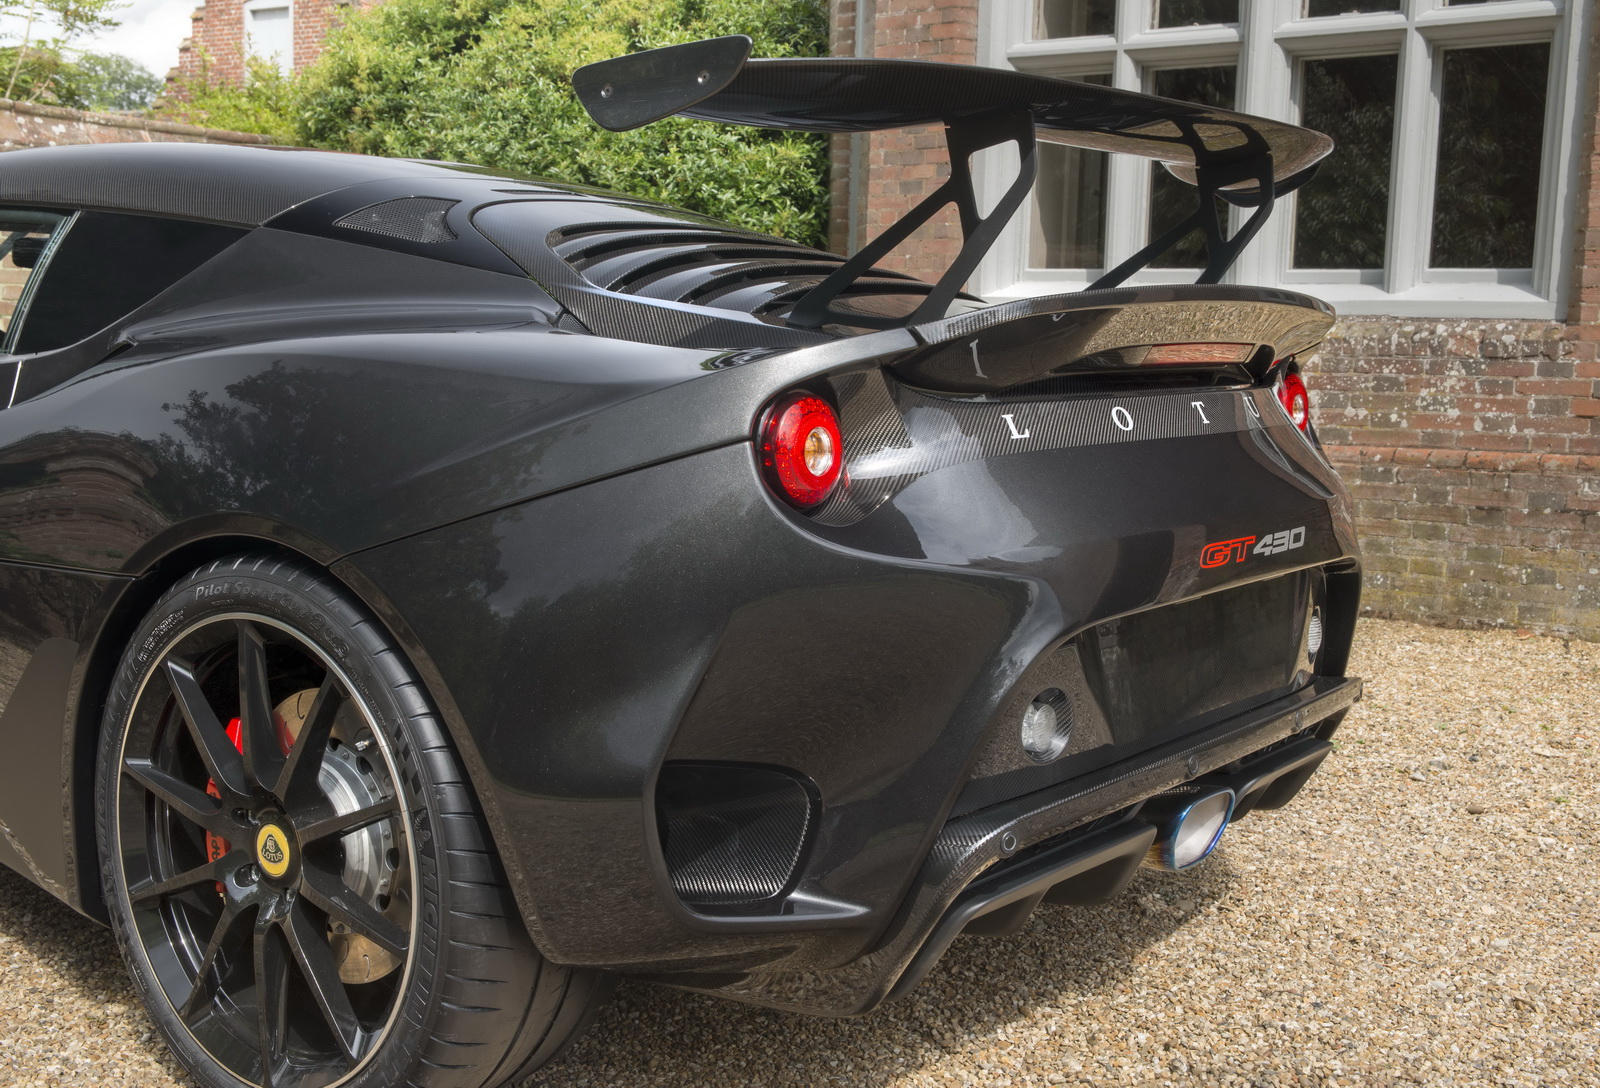 new evora gt430 is not only the most powerful lotus yet it 39 s also the best looking carscoops. Black Bedroom Furniture Sets. Home Design Ideas